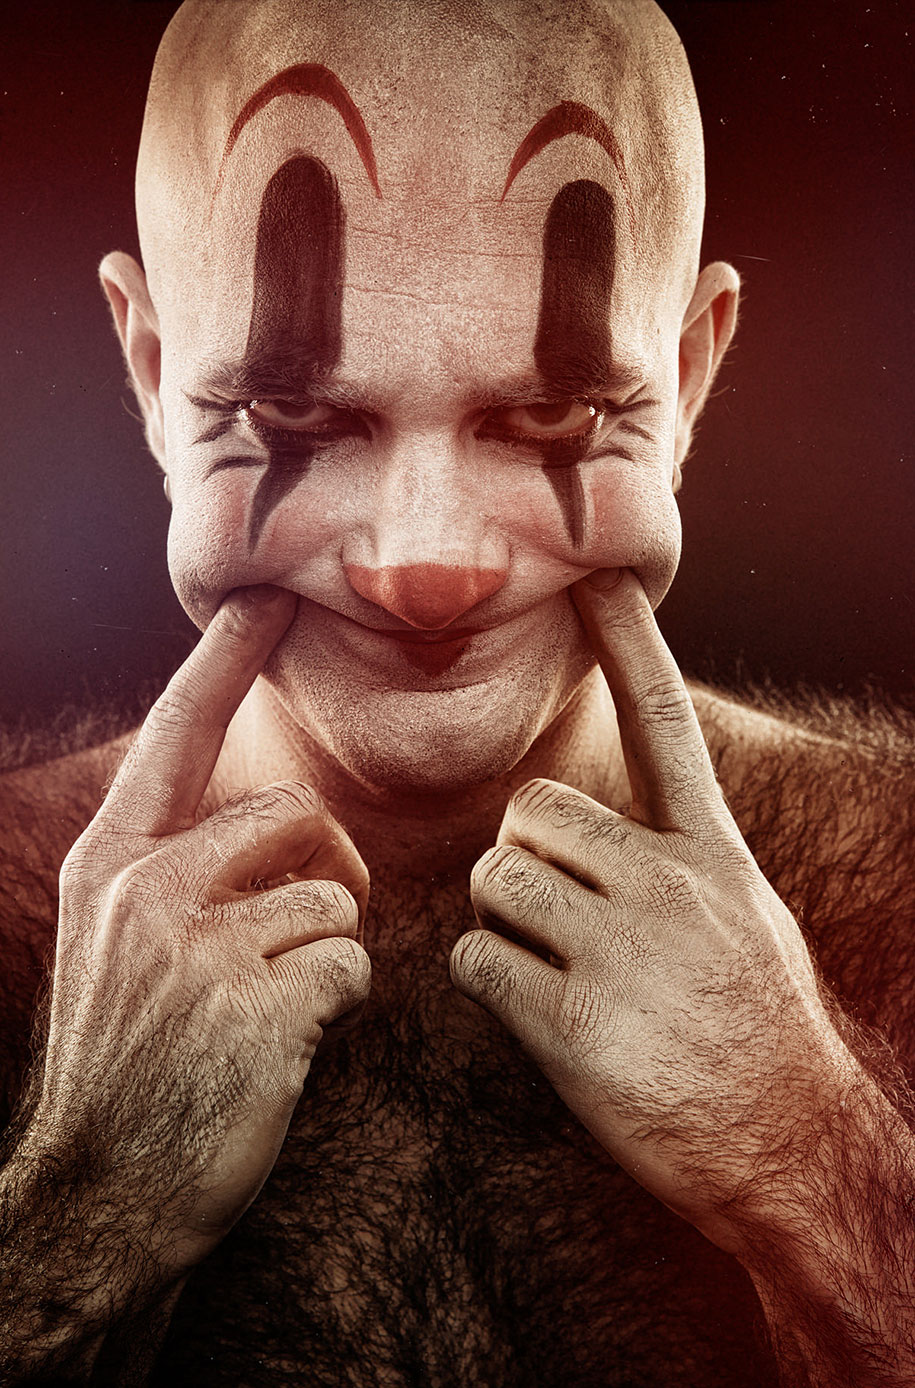 macabre-scary-clown-portraits-clownville-eolo-perfido-3